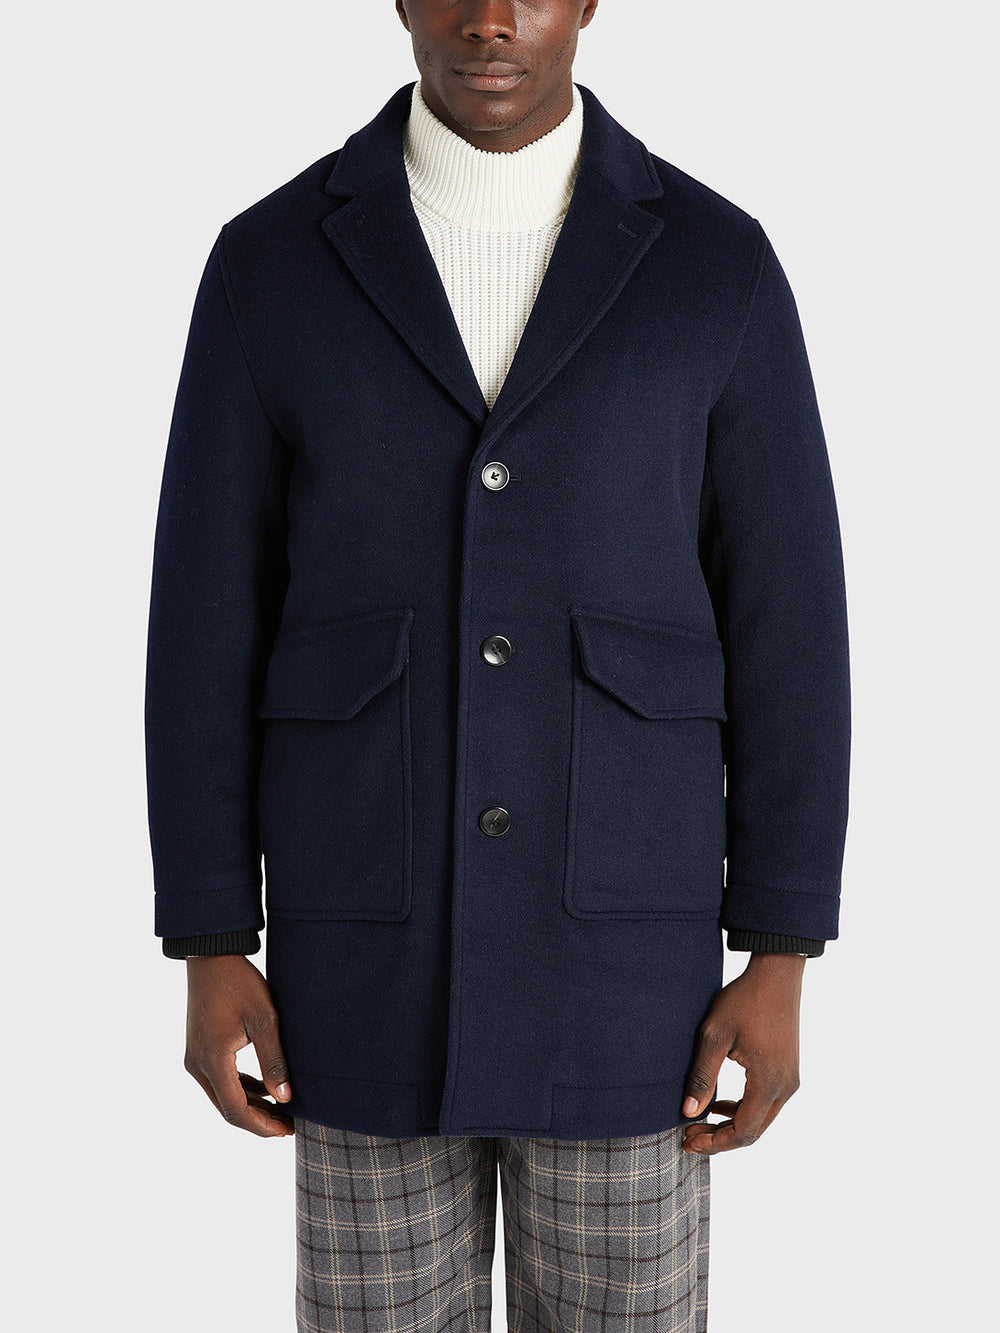 ONS Clothing Men's outerwear in NAVY